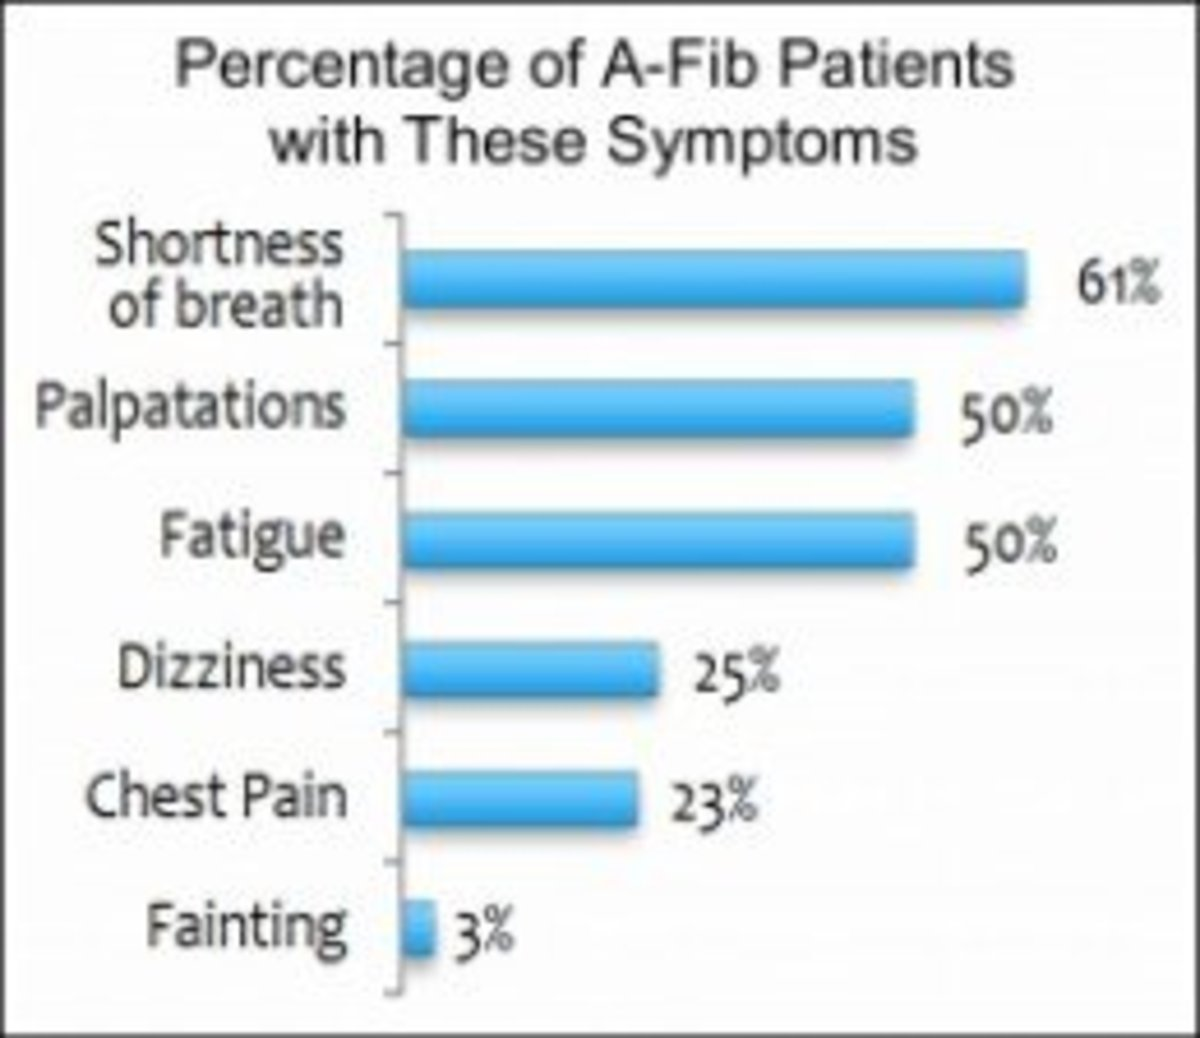 Percentage of A-Fib Patients with these Symptoms